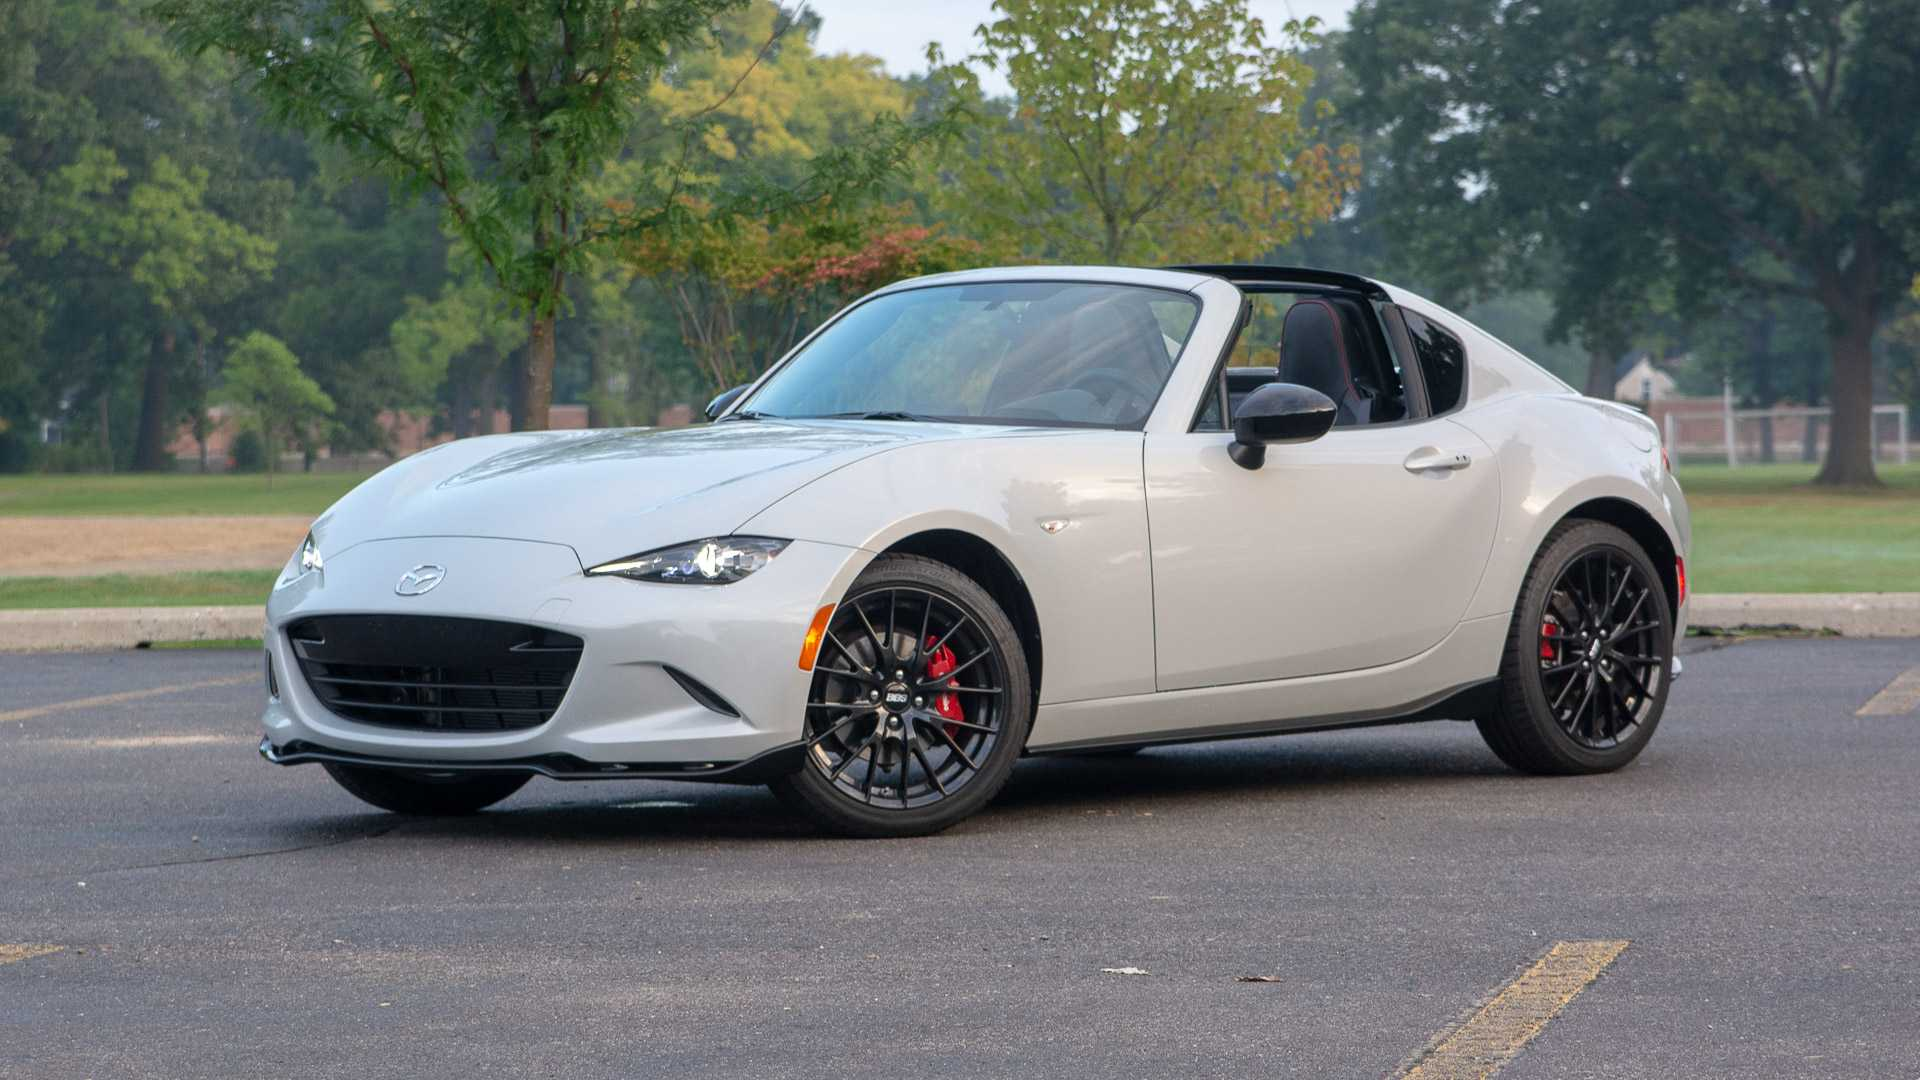 Mazda Mx 5 Miata >> 2019 Mazda Mx 5 Miata Rf Review Makin Gains